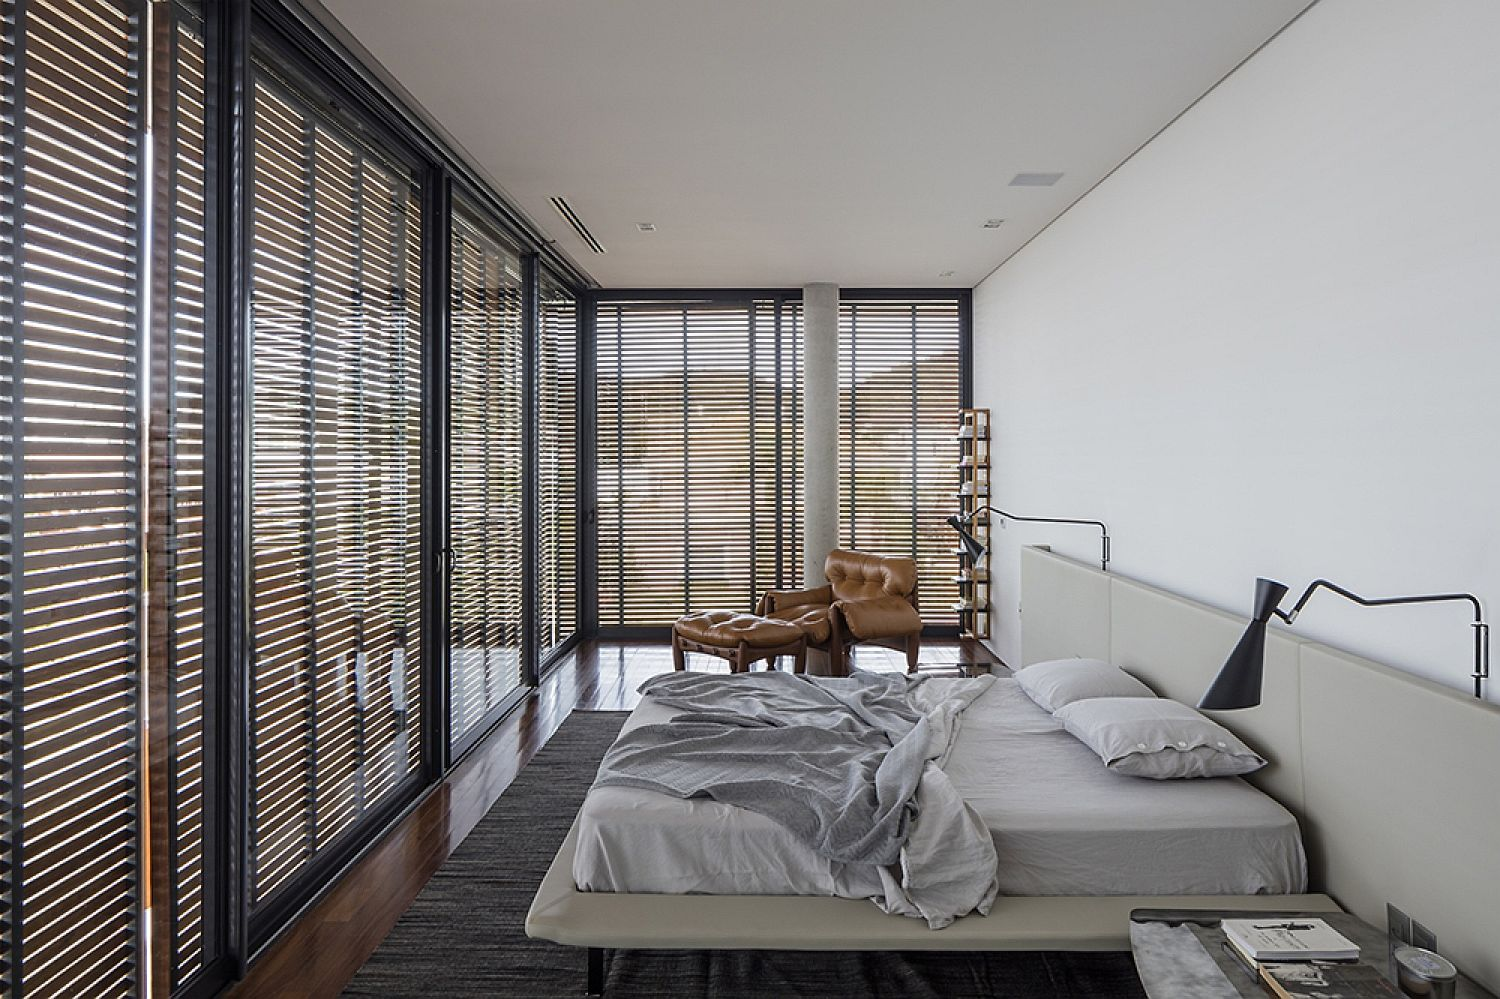 Modern-bedroom-in-white-with-glass-walls-and-wooden-slats